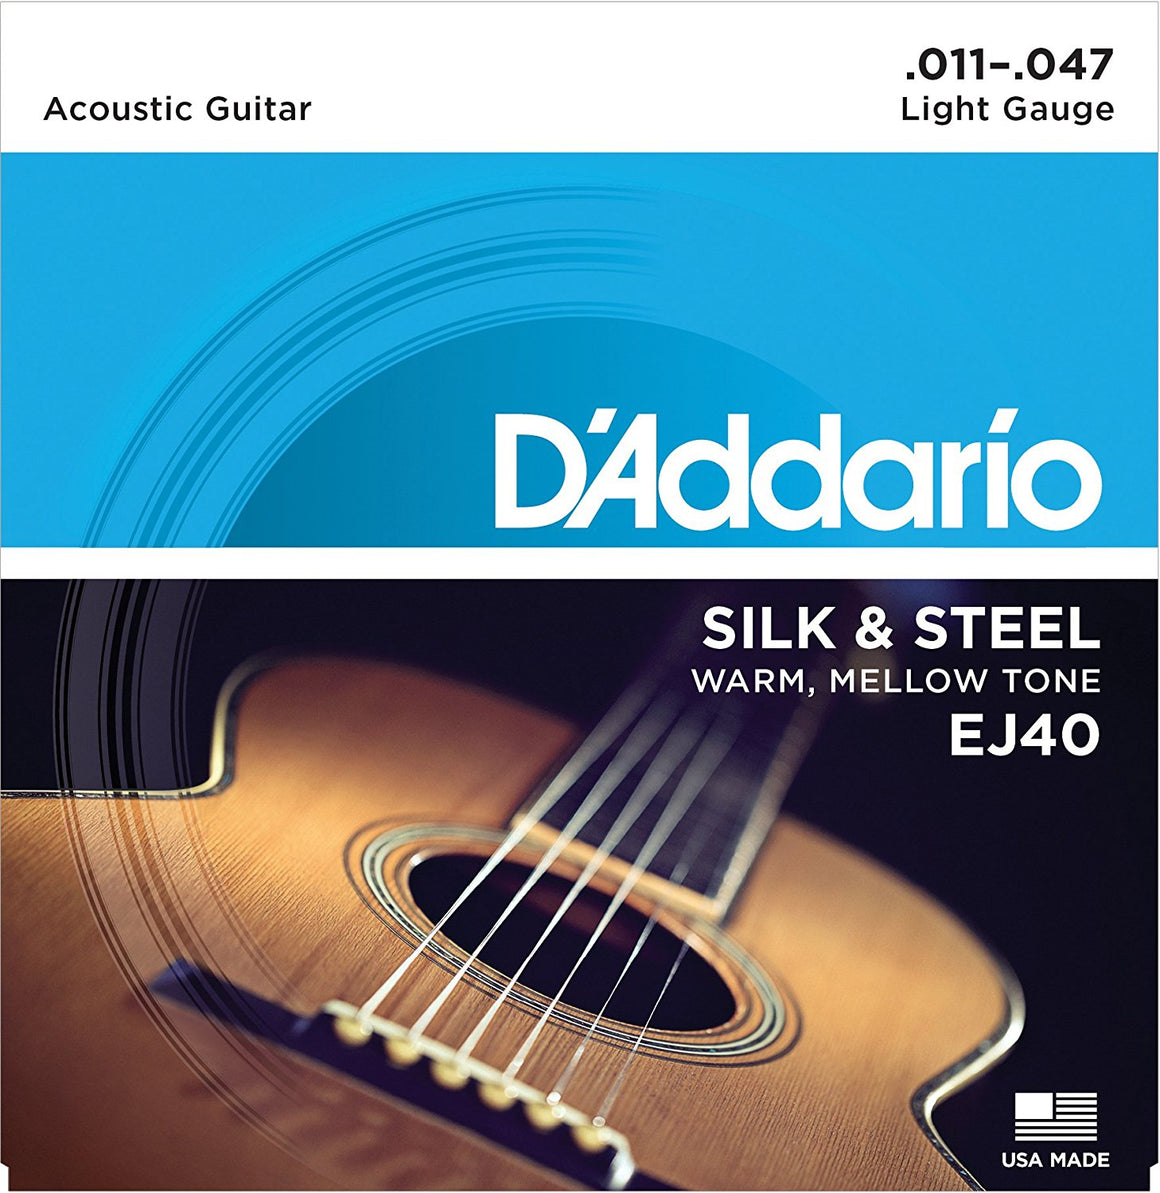 D'ADDARIO J40 Light Acoustic Guitar Strings, Silk & Steel